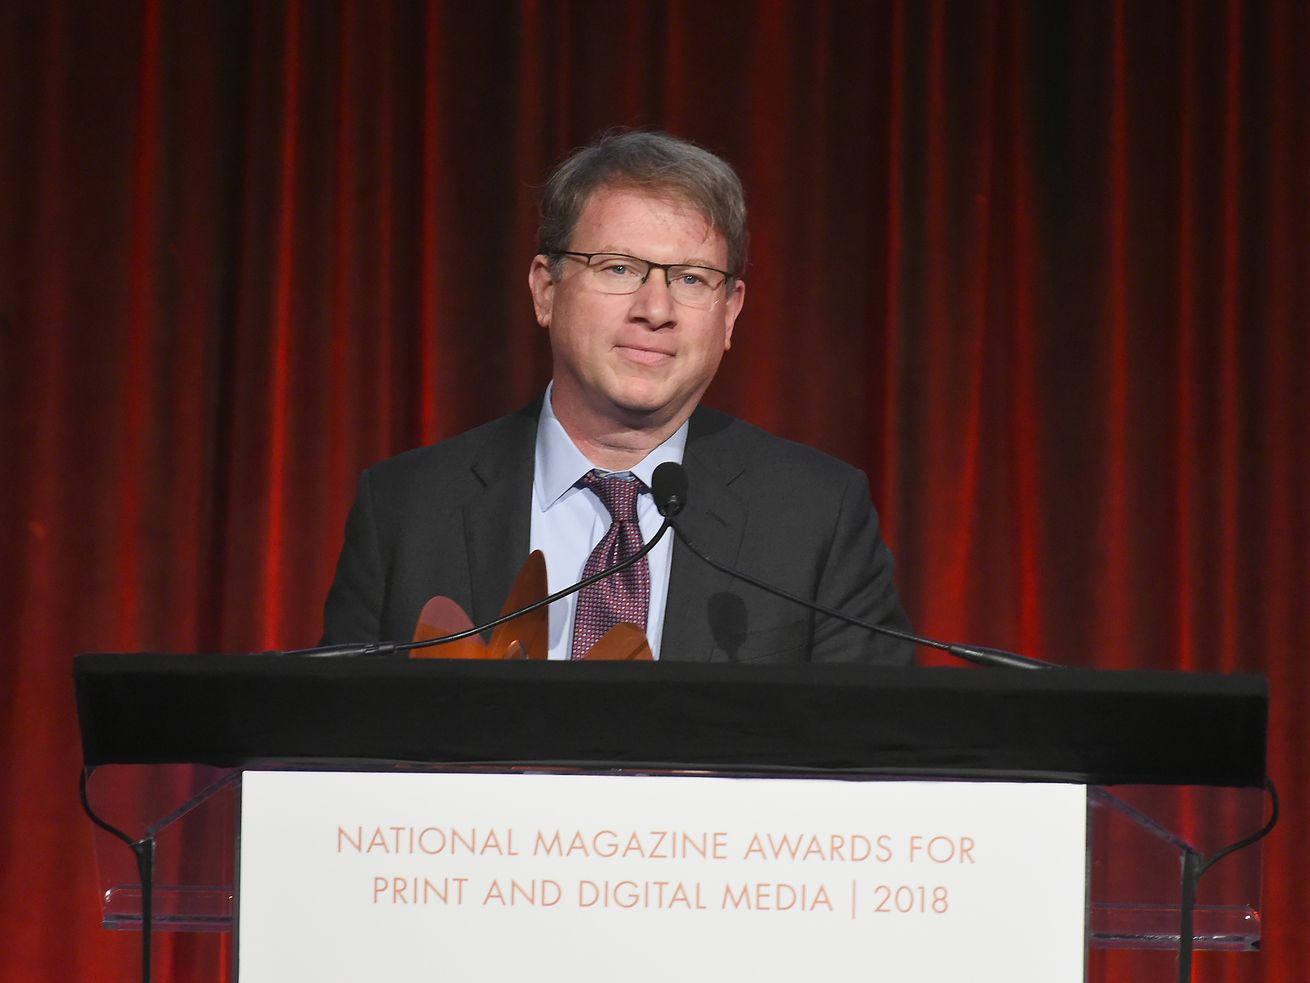 The Atlantic's editor-in-chief Jeffrey Goldberg is trying to diversify the magazine, but he hasn't gotten to the cover stories.